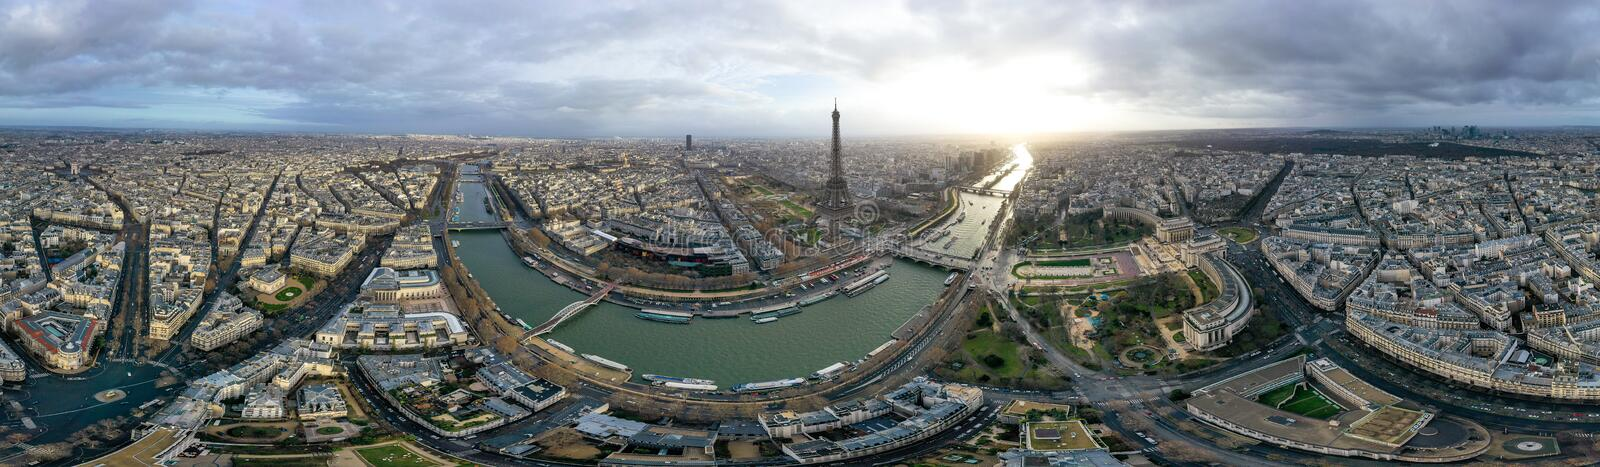 Paris Aerial 360 Panoramic Cityscape View in France royalty free stock photography